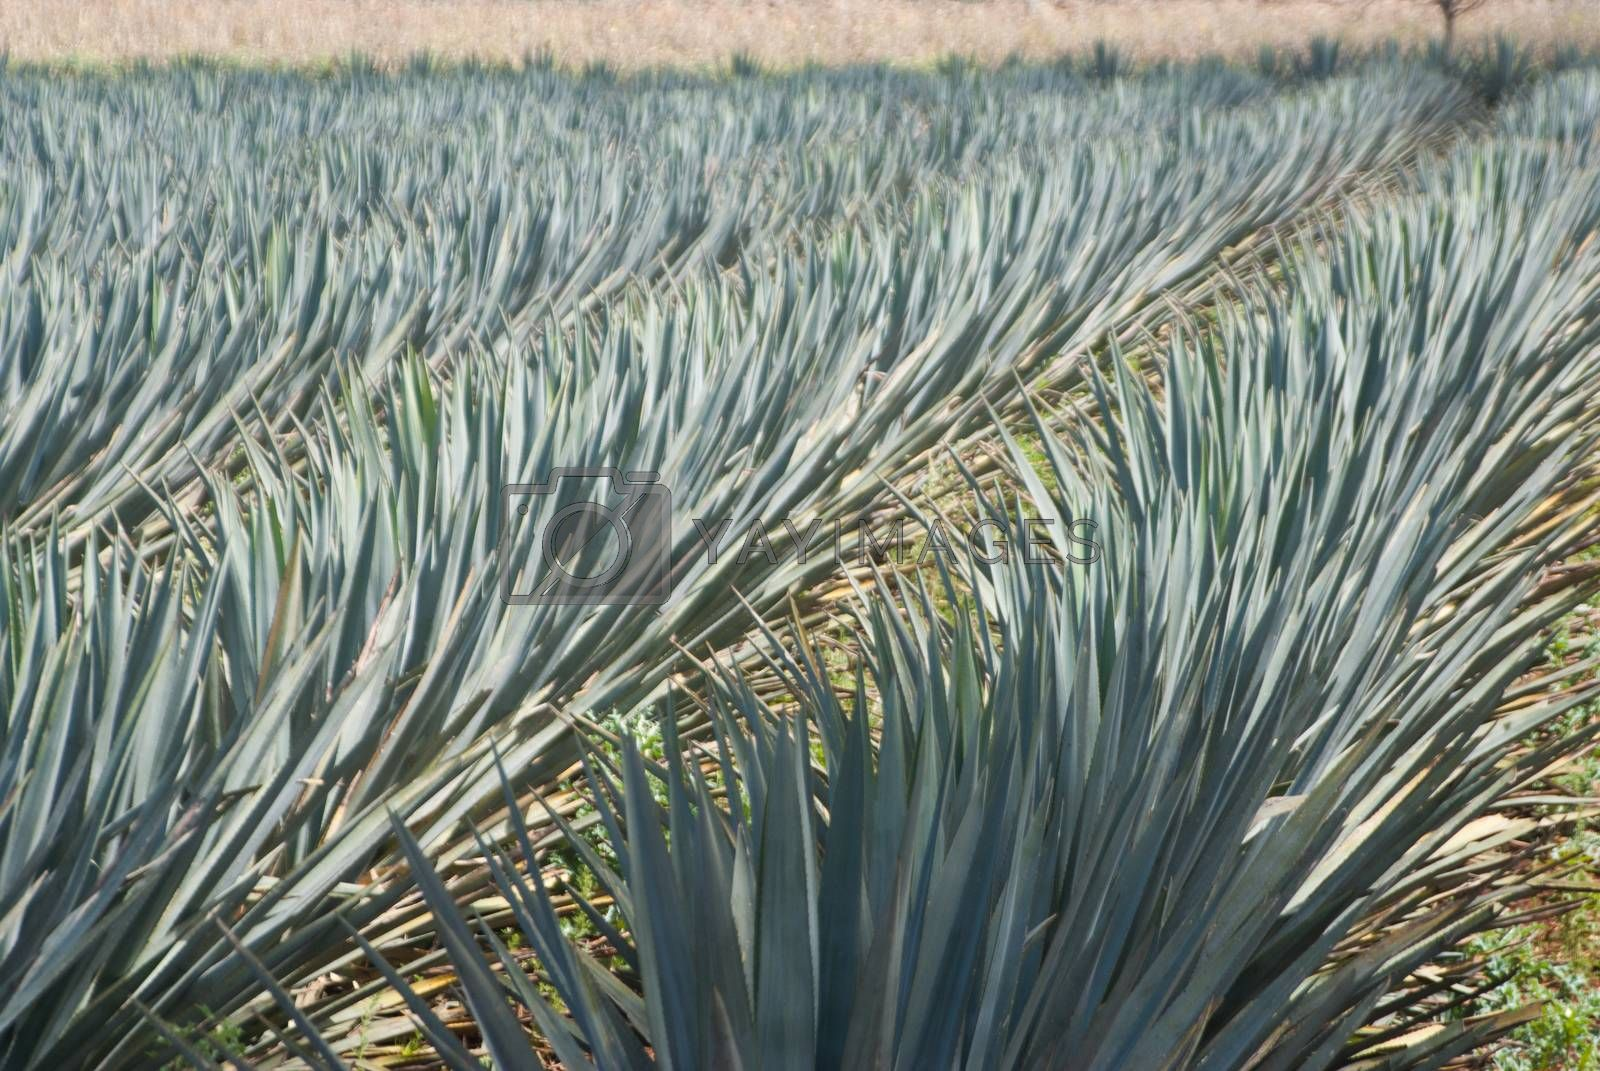 Agave blowing in the wind by emattil